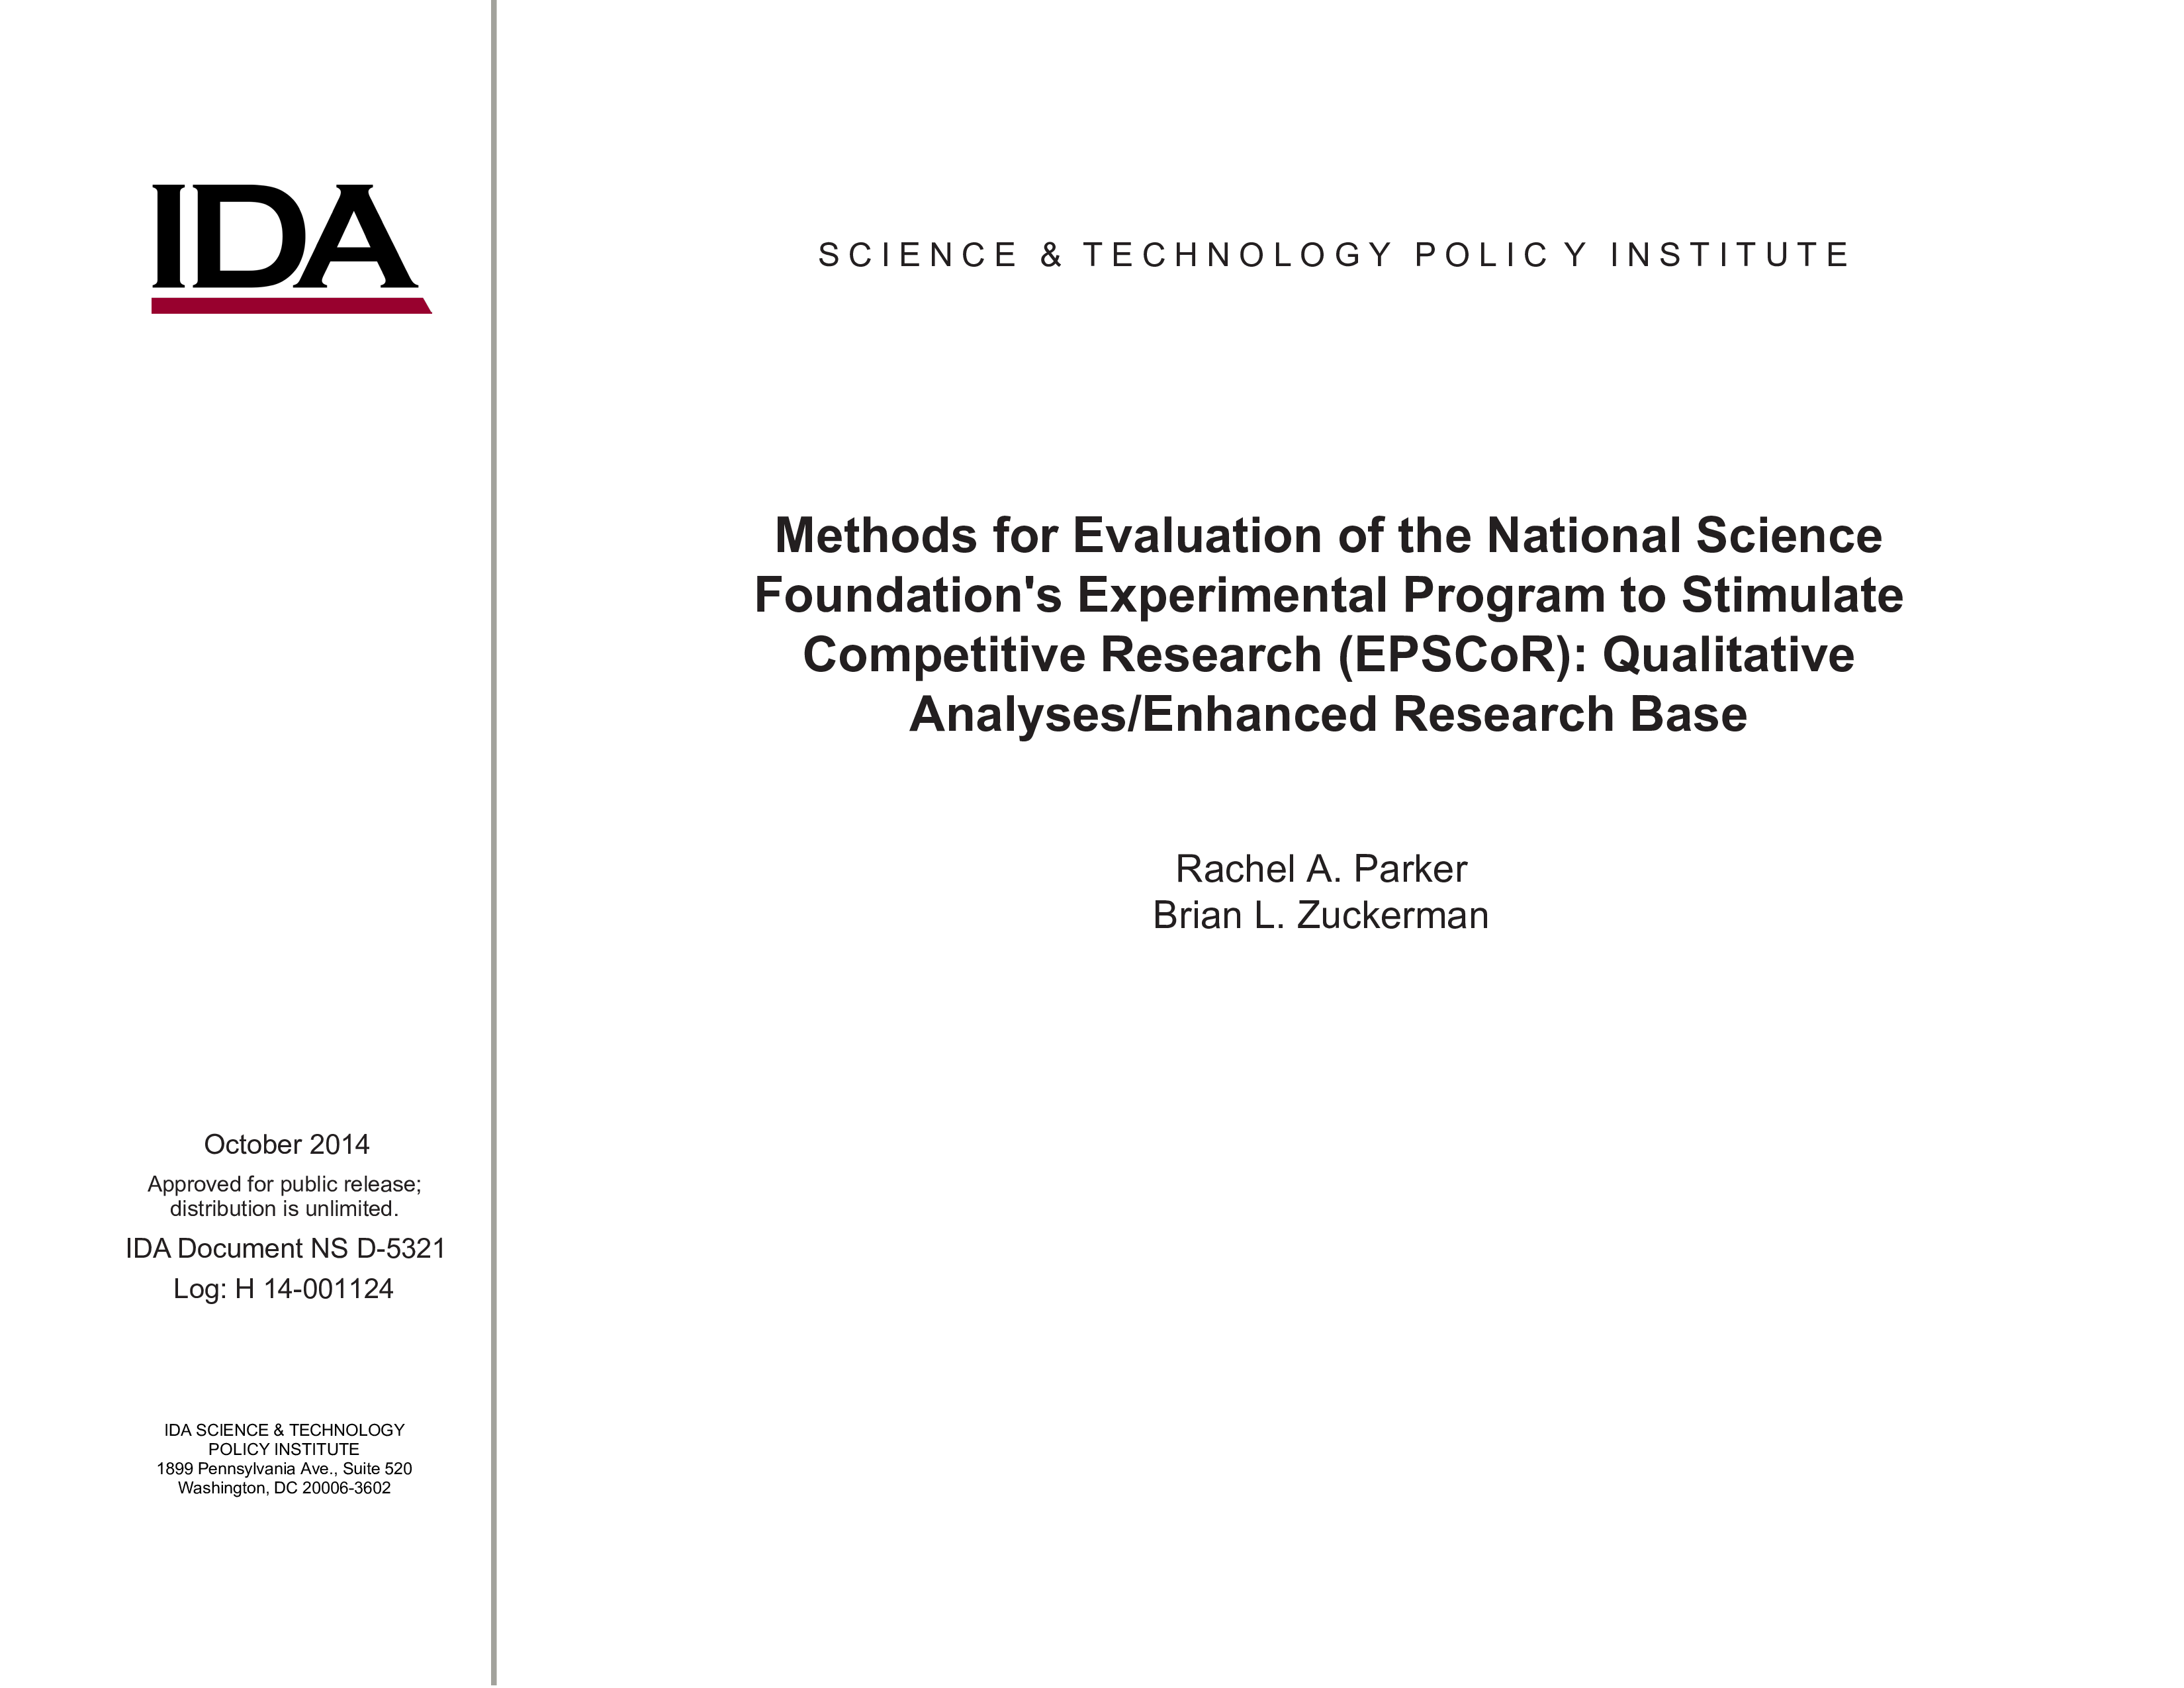 Methods for Evaluation of the National Science Foundation's Experimental Program to Stimulate Competitive Research (EPSCoR): Qualitative Analyses/Enhanced Research Base